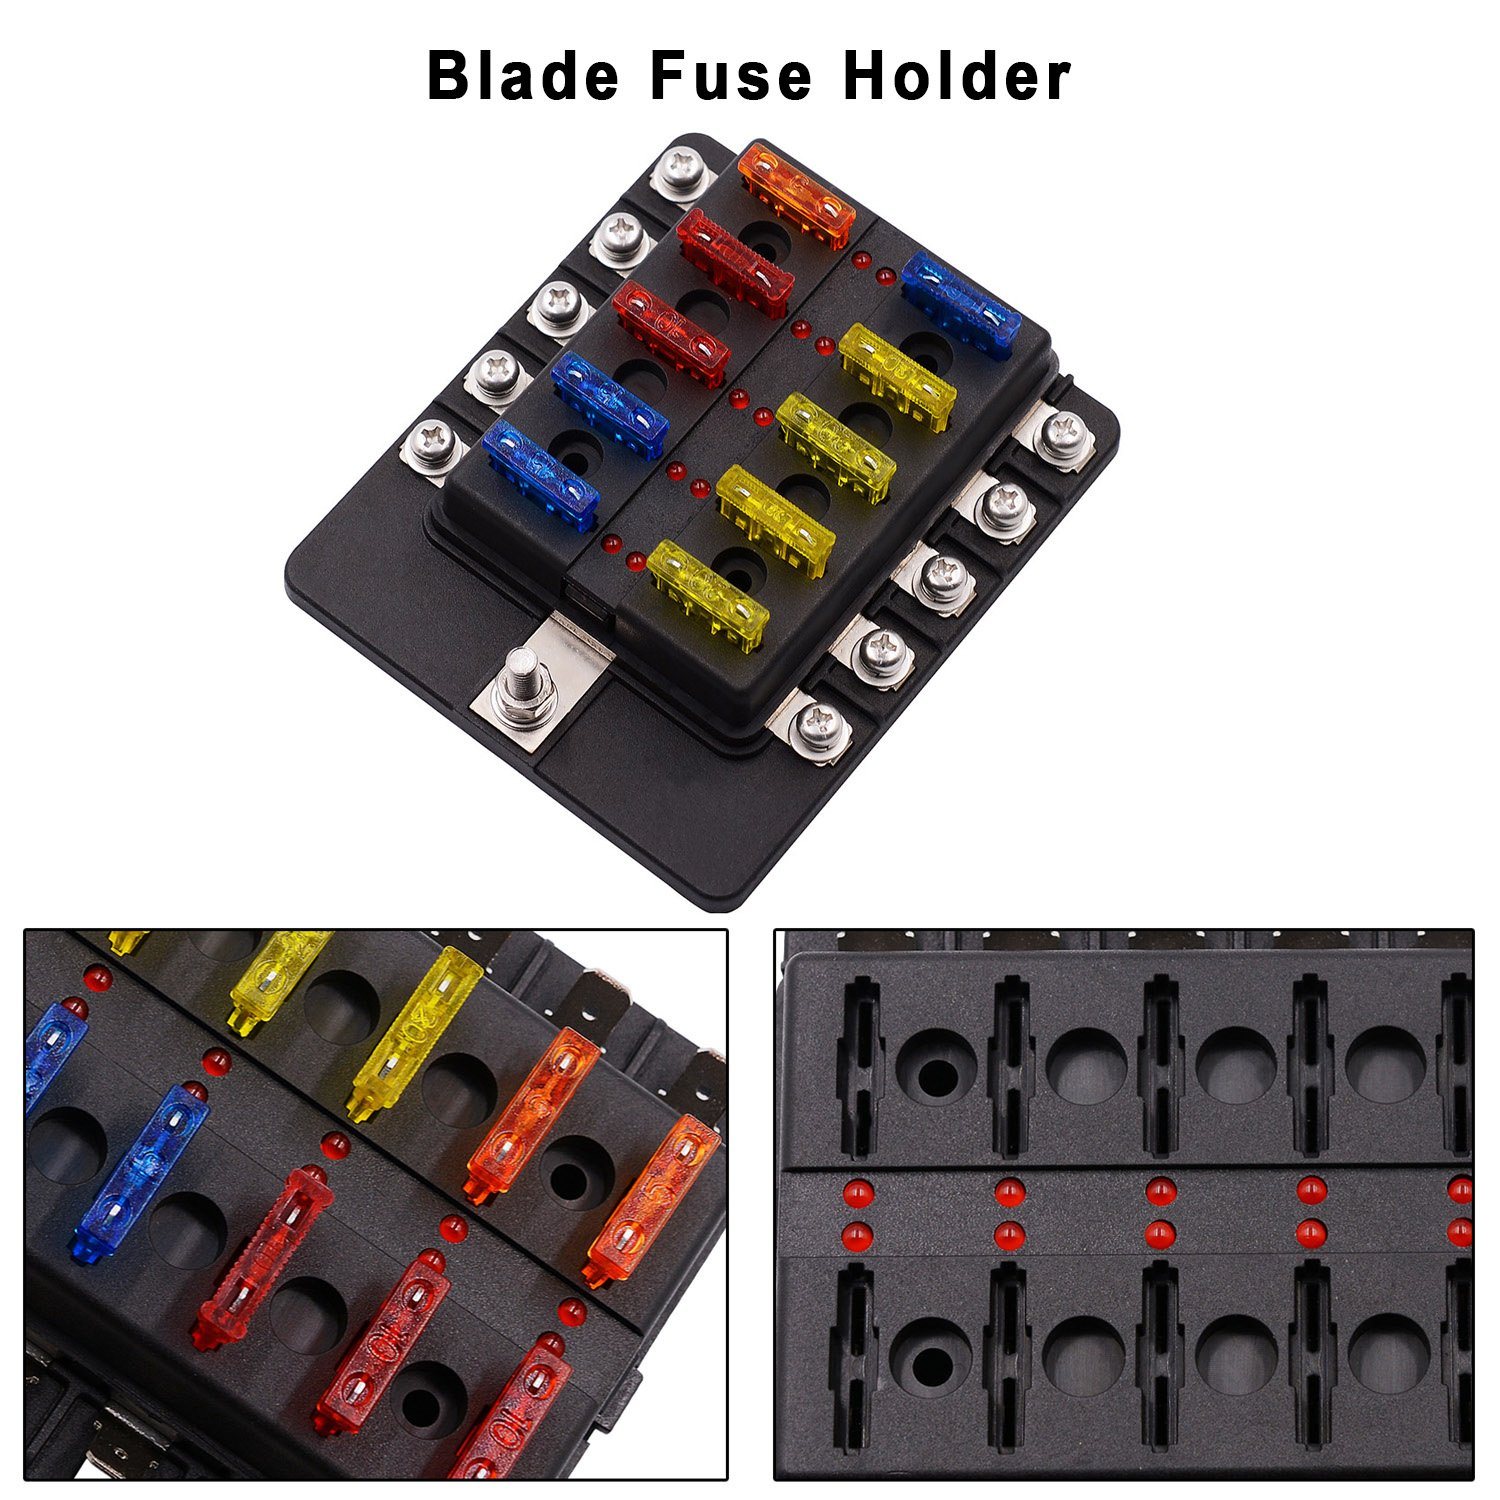 Amazon.com: VETOMILE 10-way Fuse Box Blade Fuse Block Holder Screw Nut  Terminal 5A 10A 15A 20A Free Fuses LED Indicator Waterpoof Cover for Automotive  Car ...